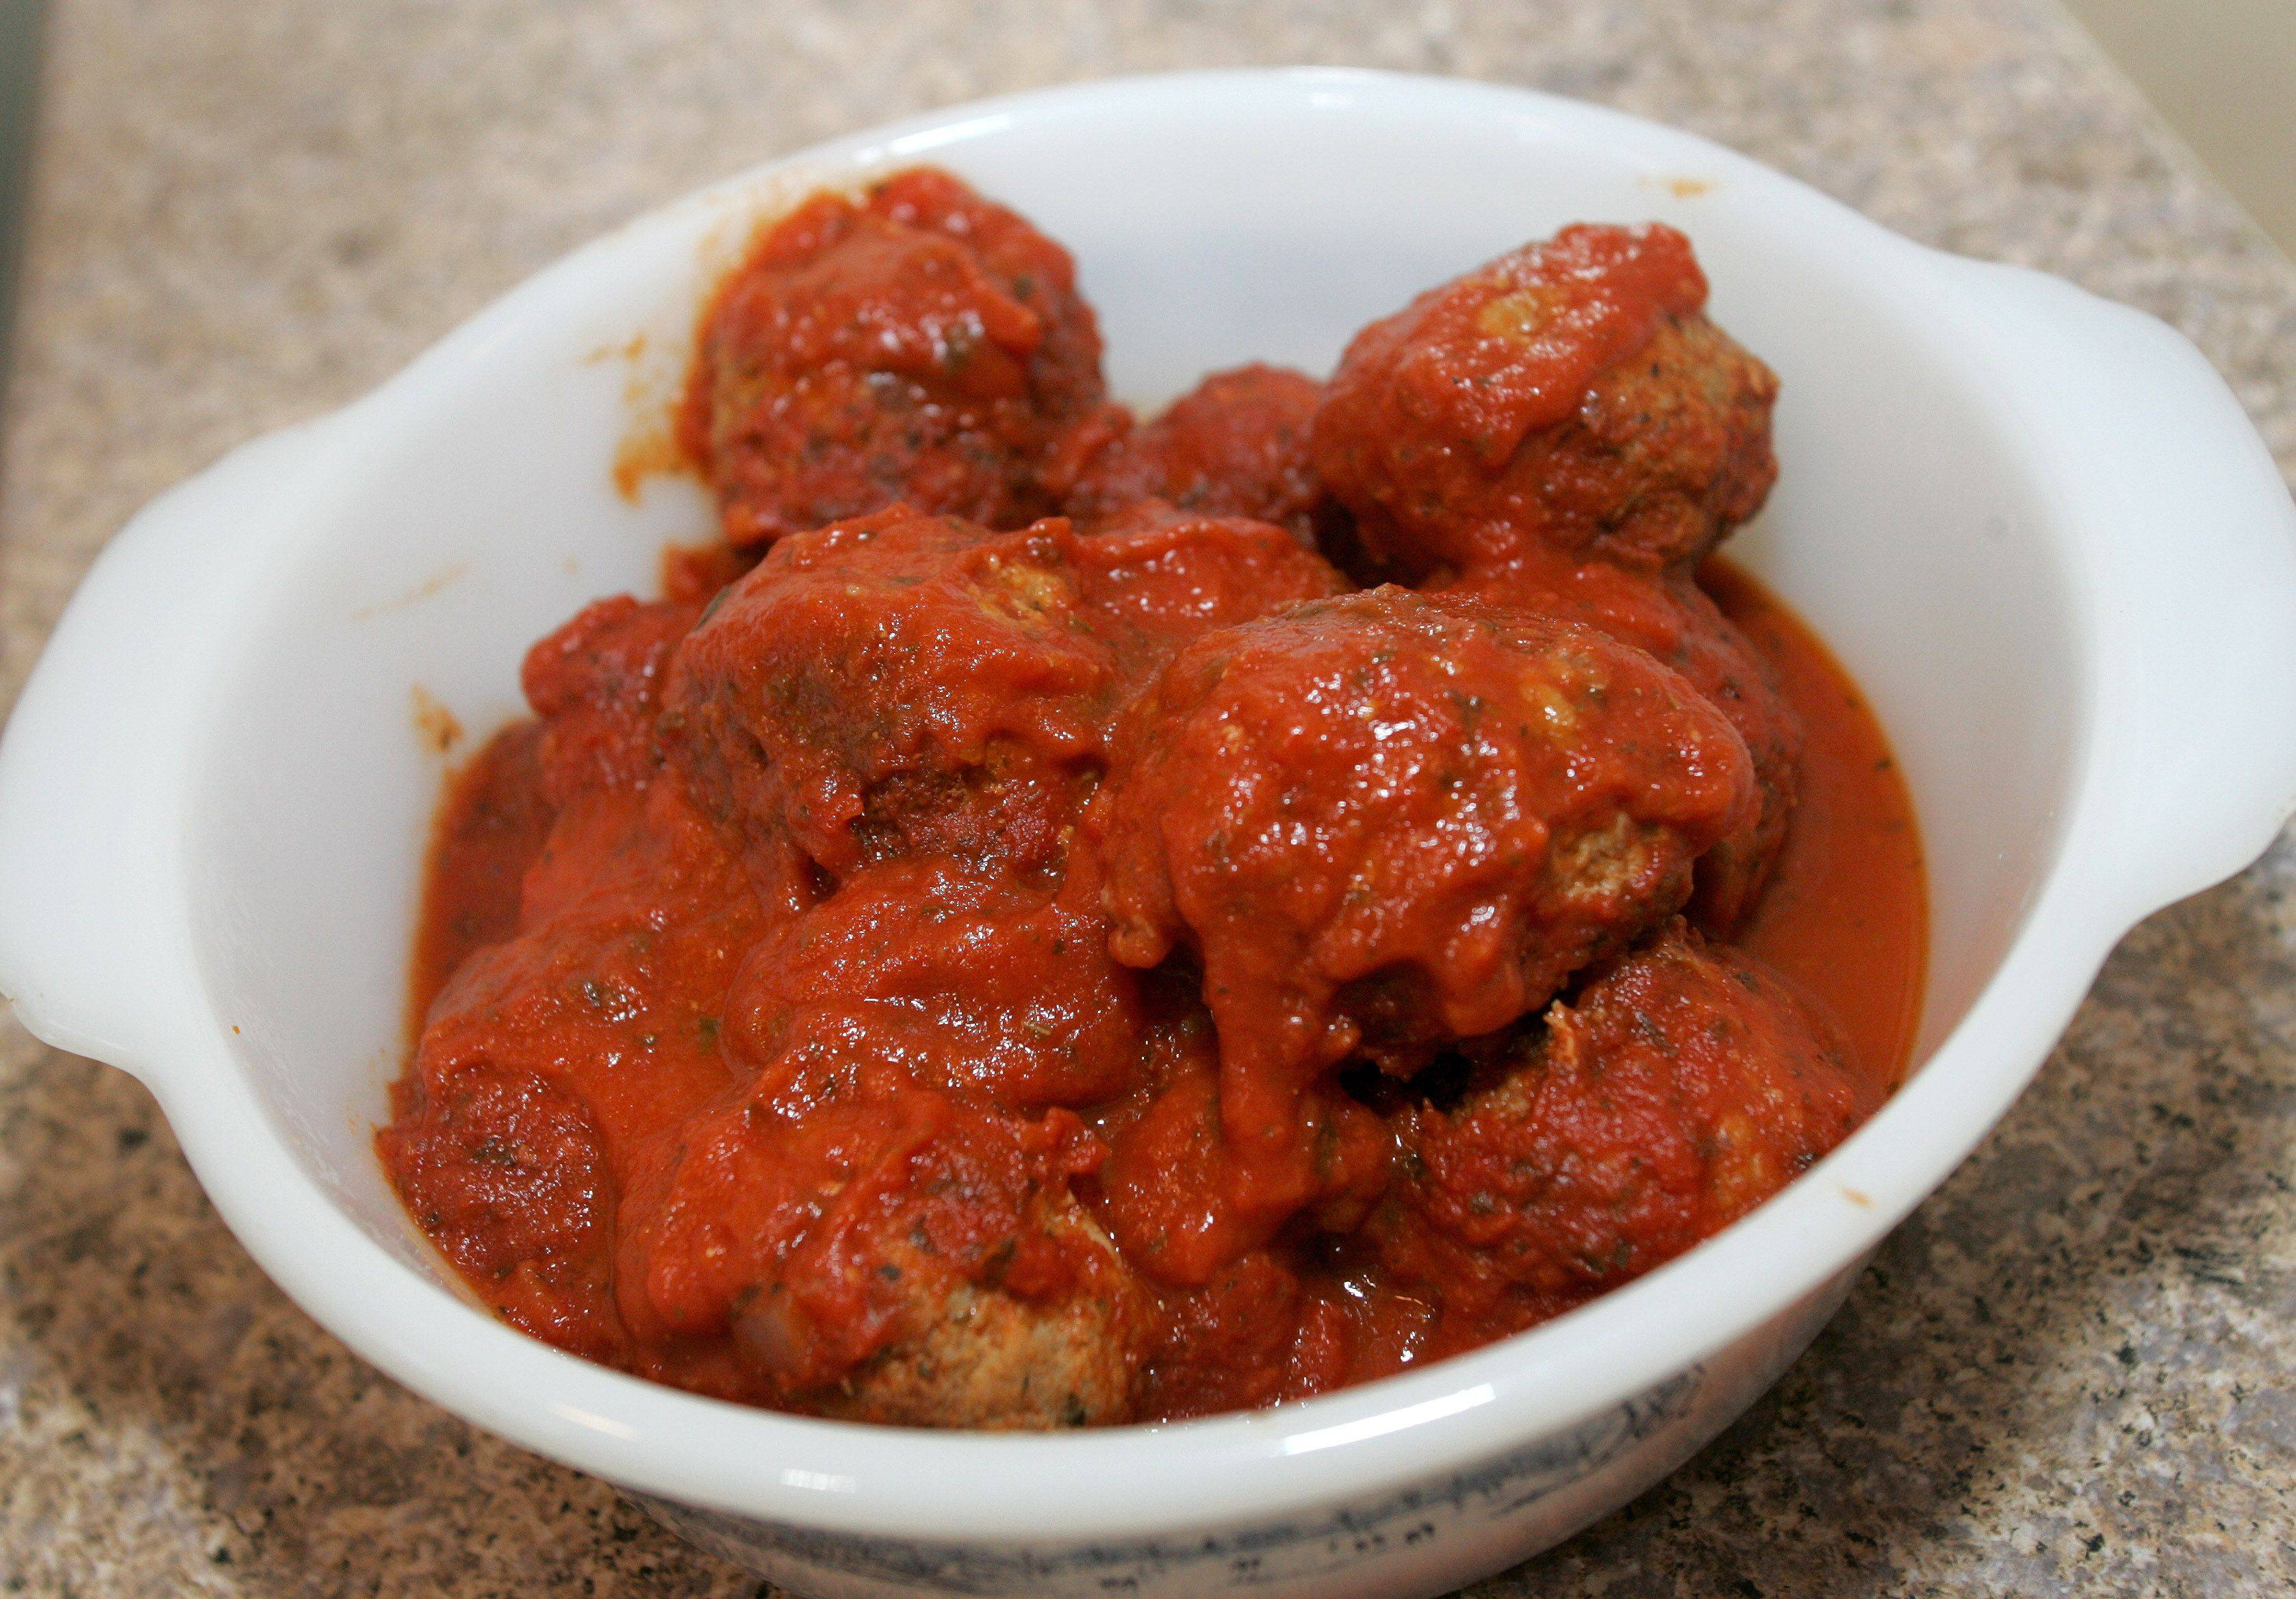 After browning her meatballs Mary Lou Salato of Wheaton simmers them in a thick tomato sauce.